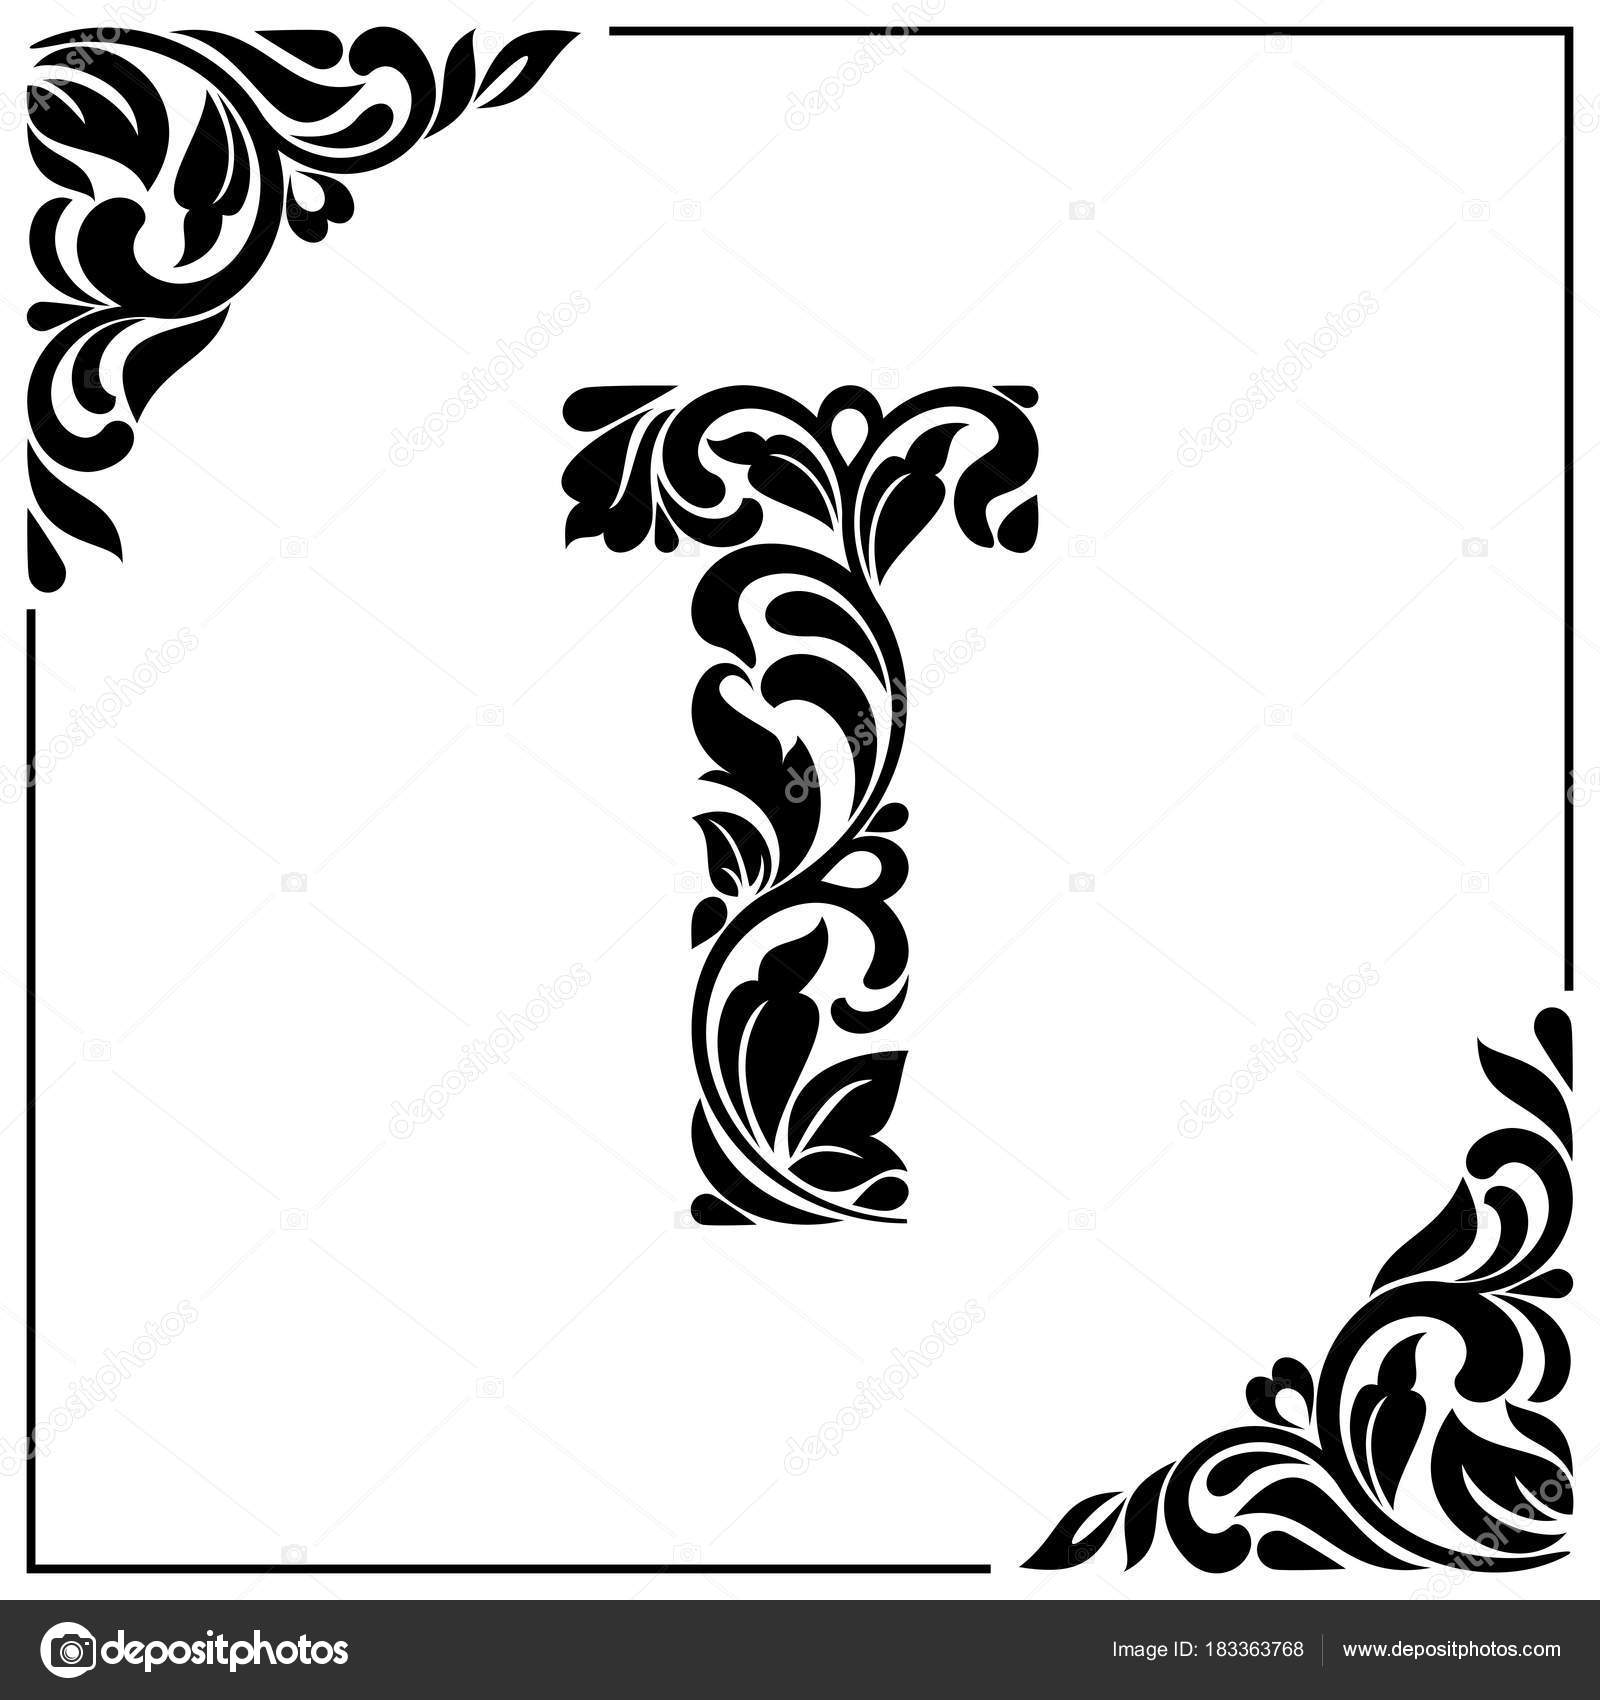 The Letter T Decorative Font With Swirls And Floral Elements Vintage Style Stock